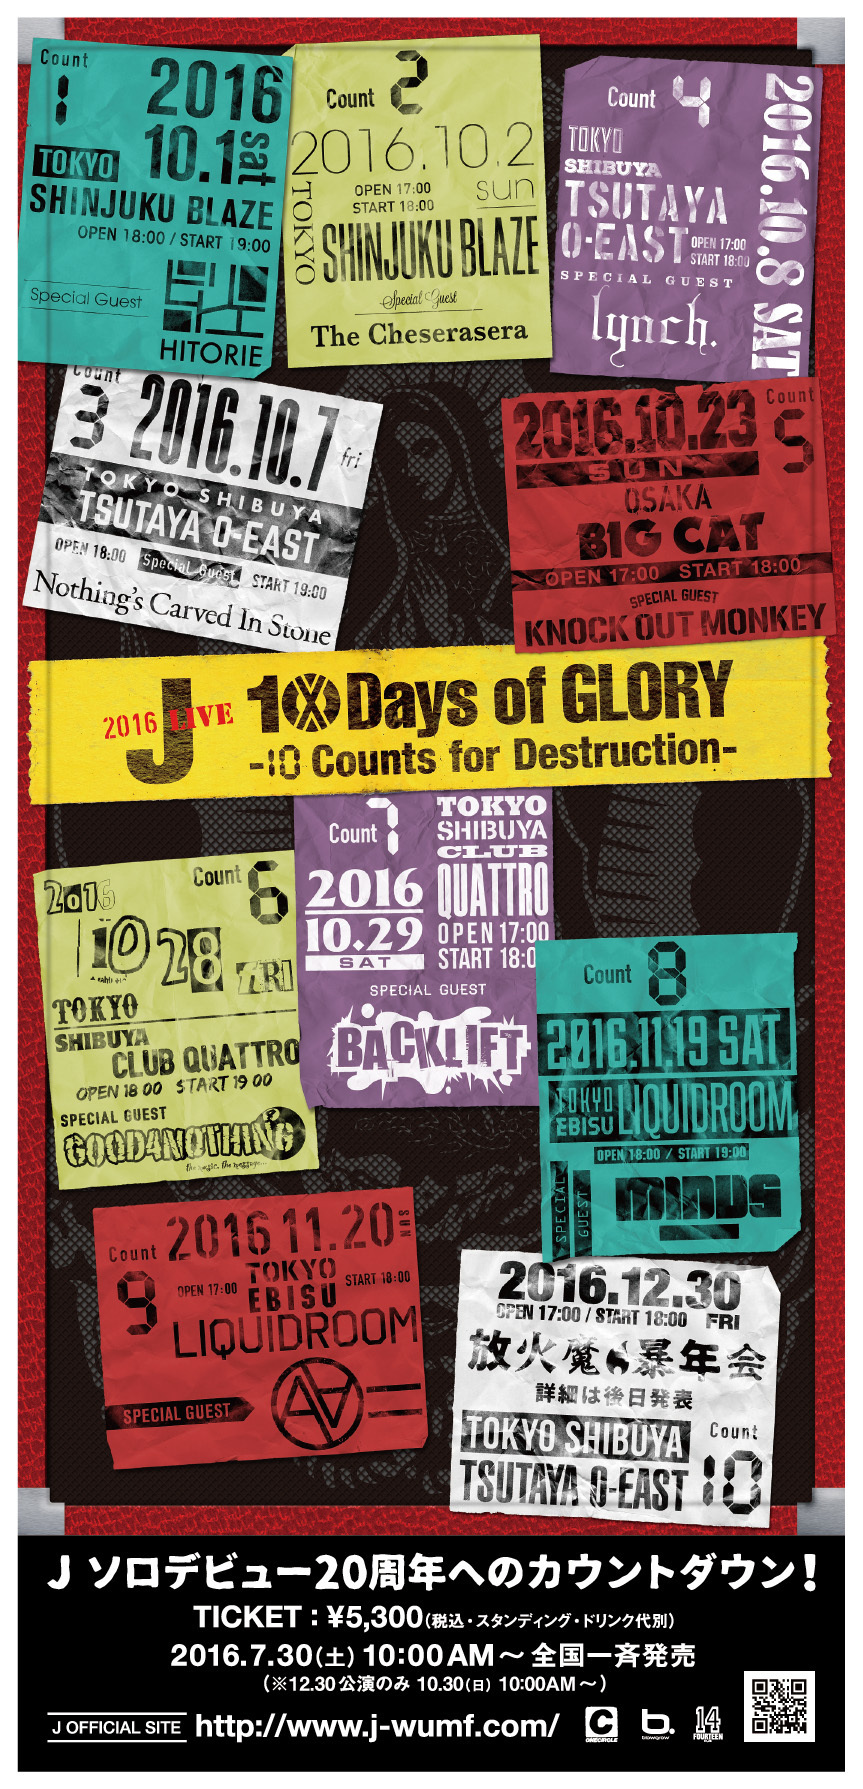 J 2016 LIVE 10 Days of GLORY -10 Counts for Destruction-